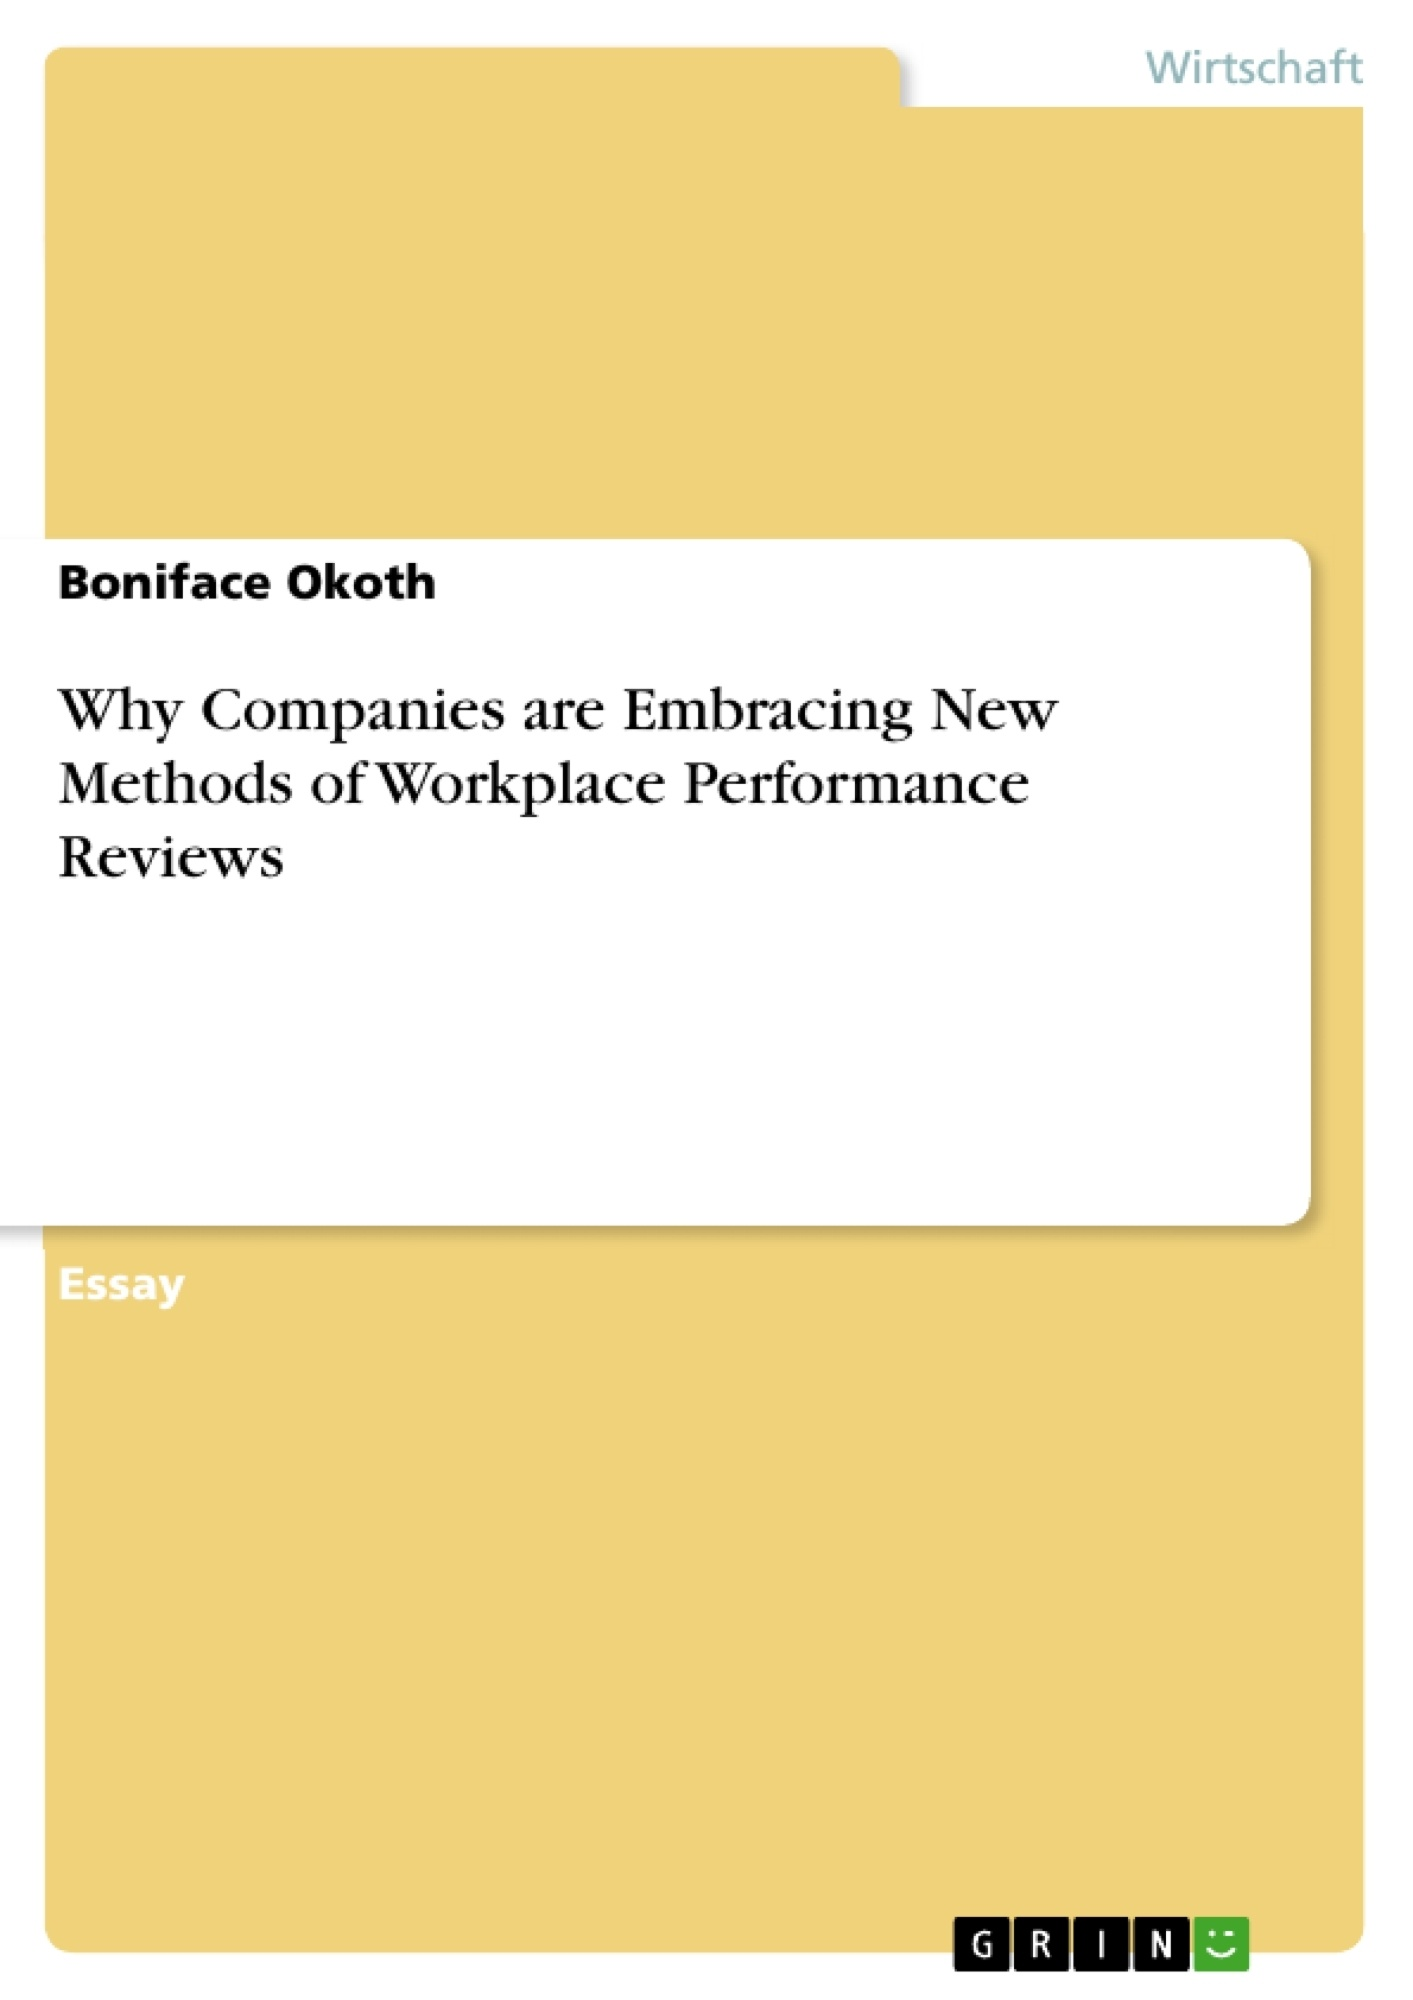 Titel: Why Companies are Embracing New Methods of Workplace Performance Reviews